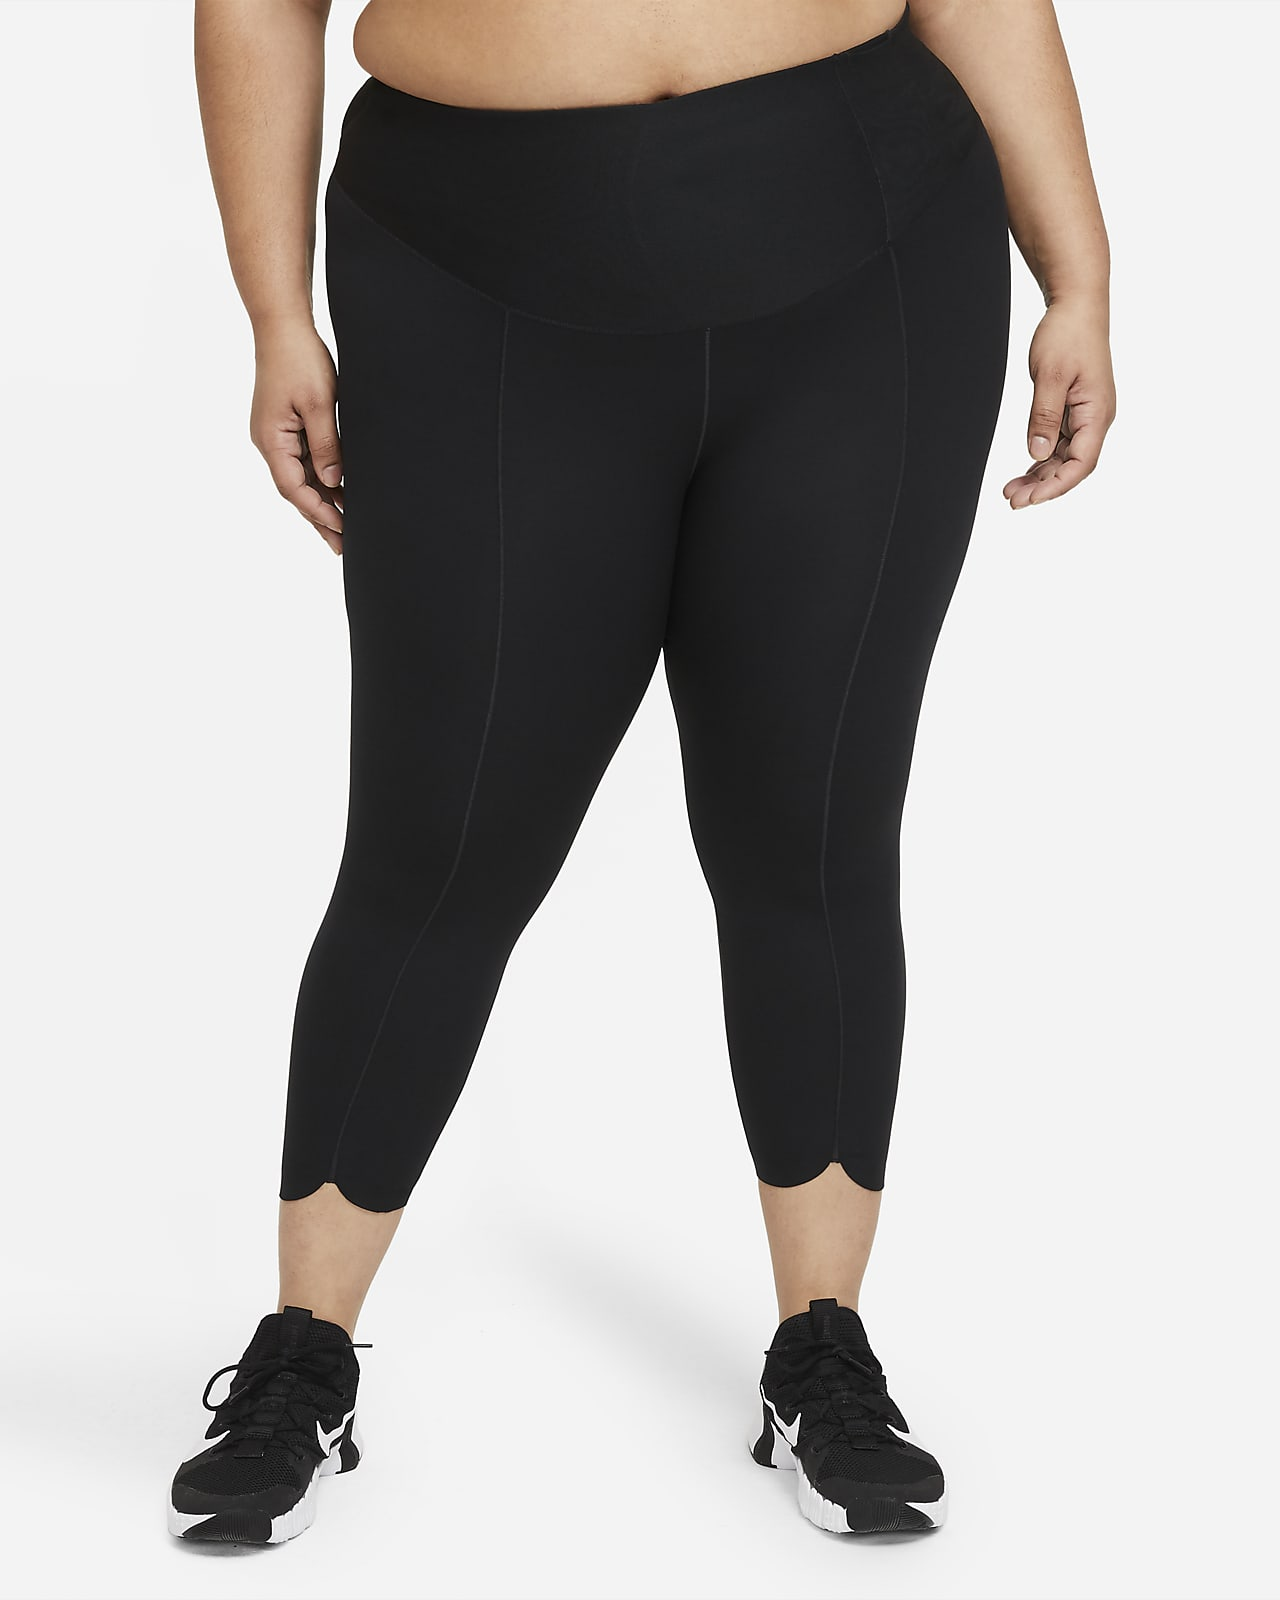 Nike One Luxe Icon Clash Women's Mid-Rise Crop Leggings (Plus Size)